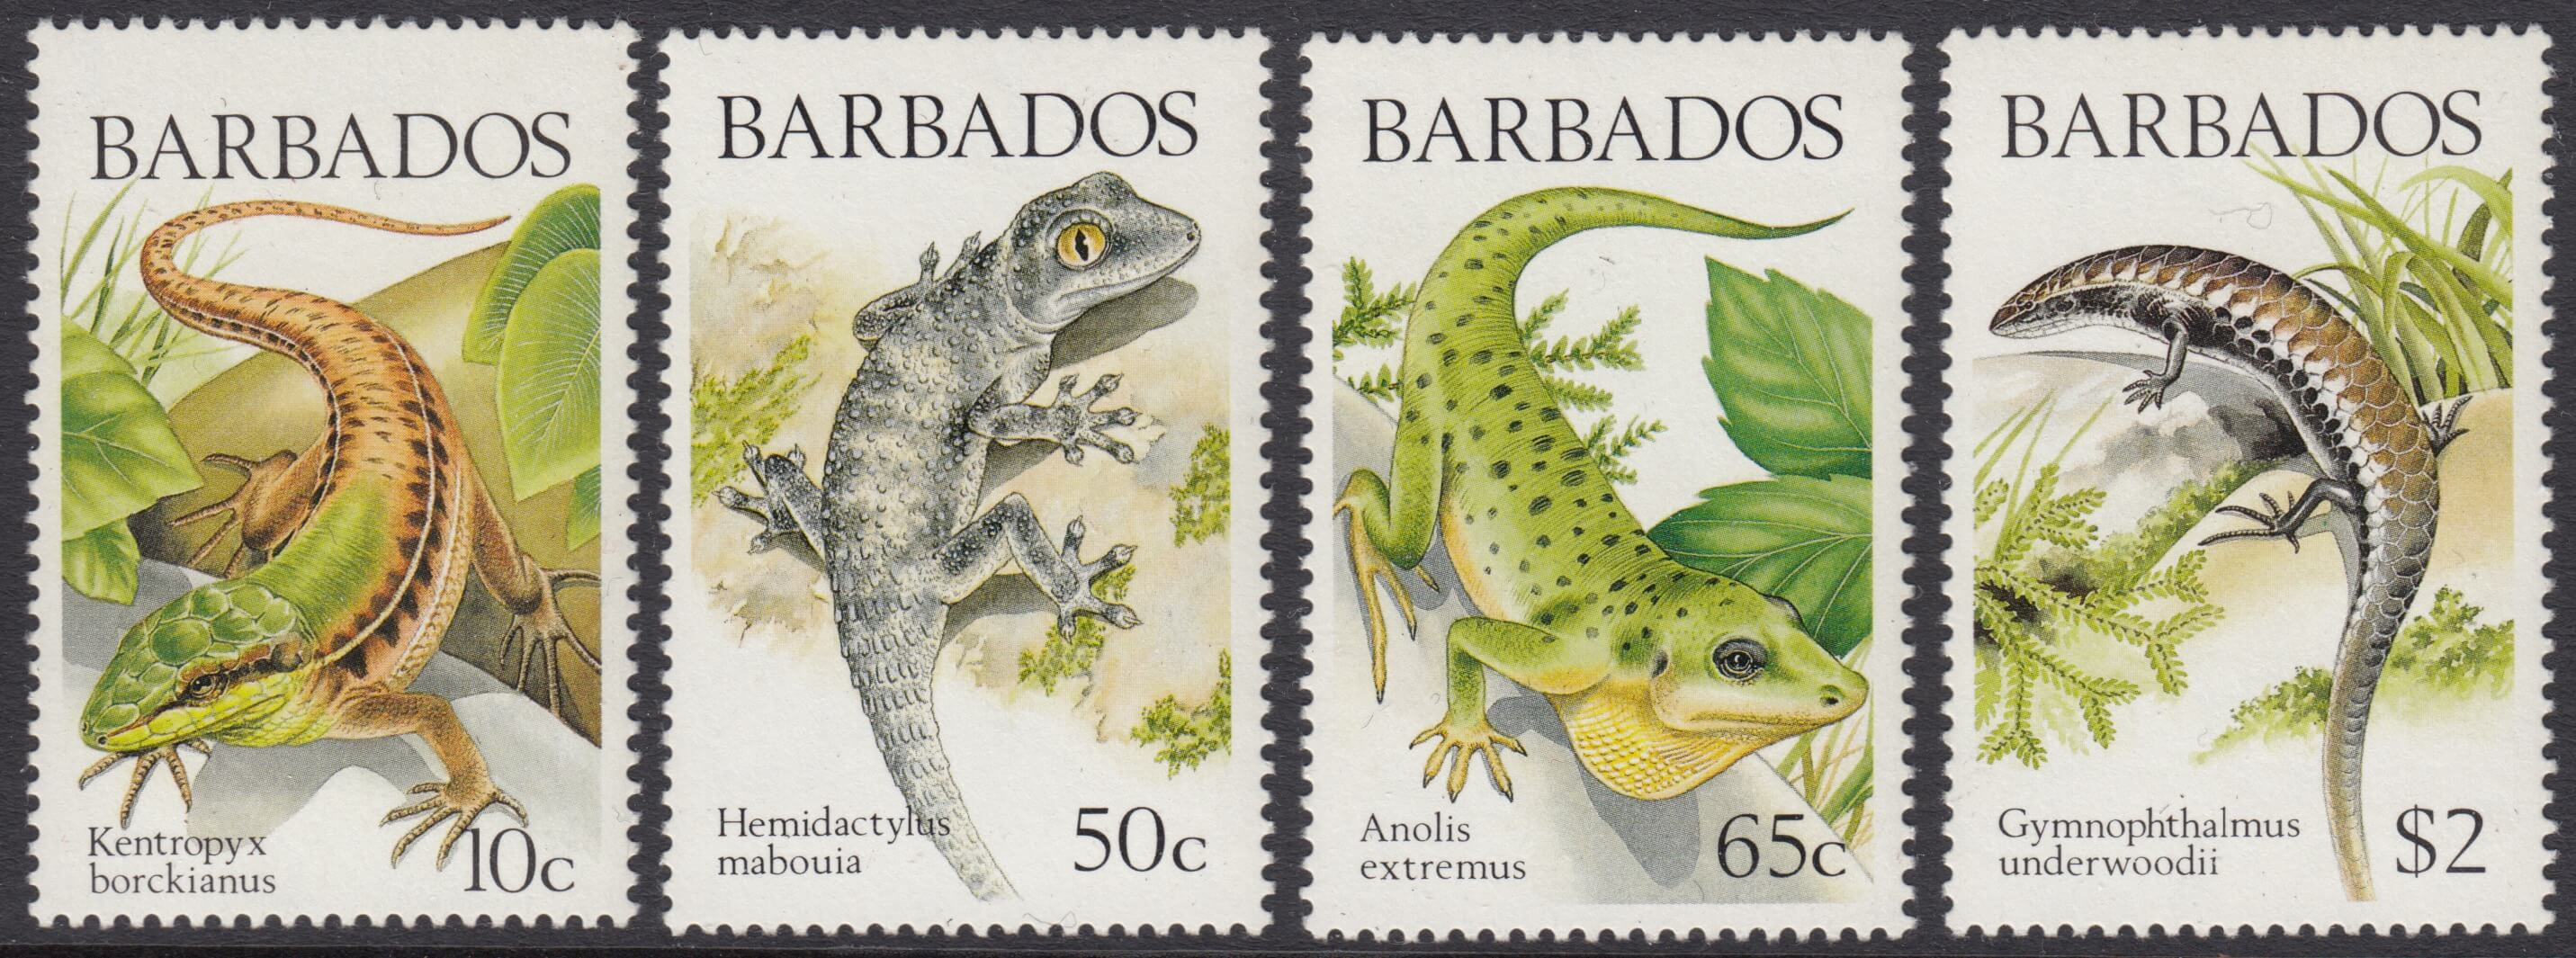 Barbados SG859-862 | Lizards of Barbados